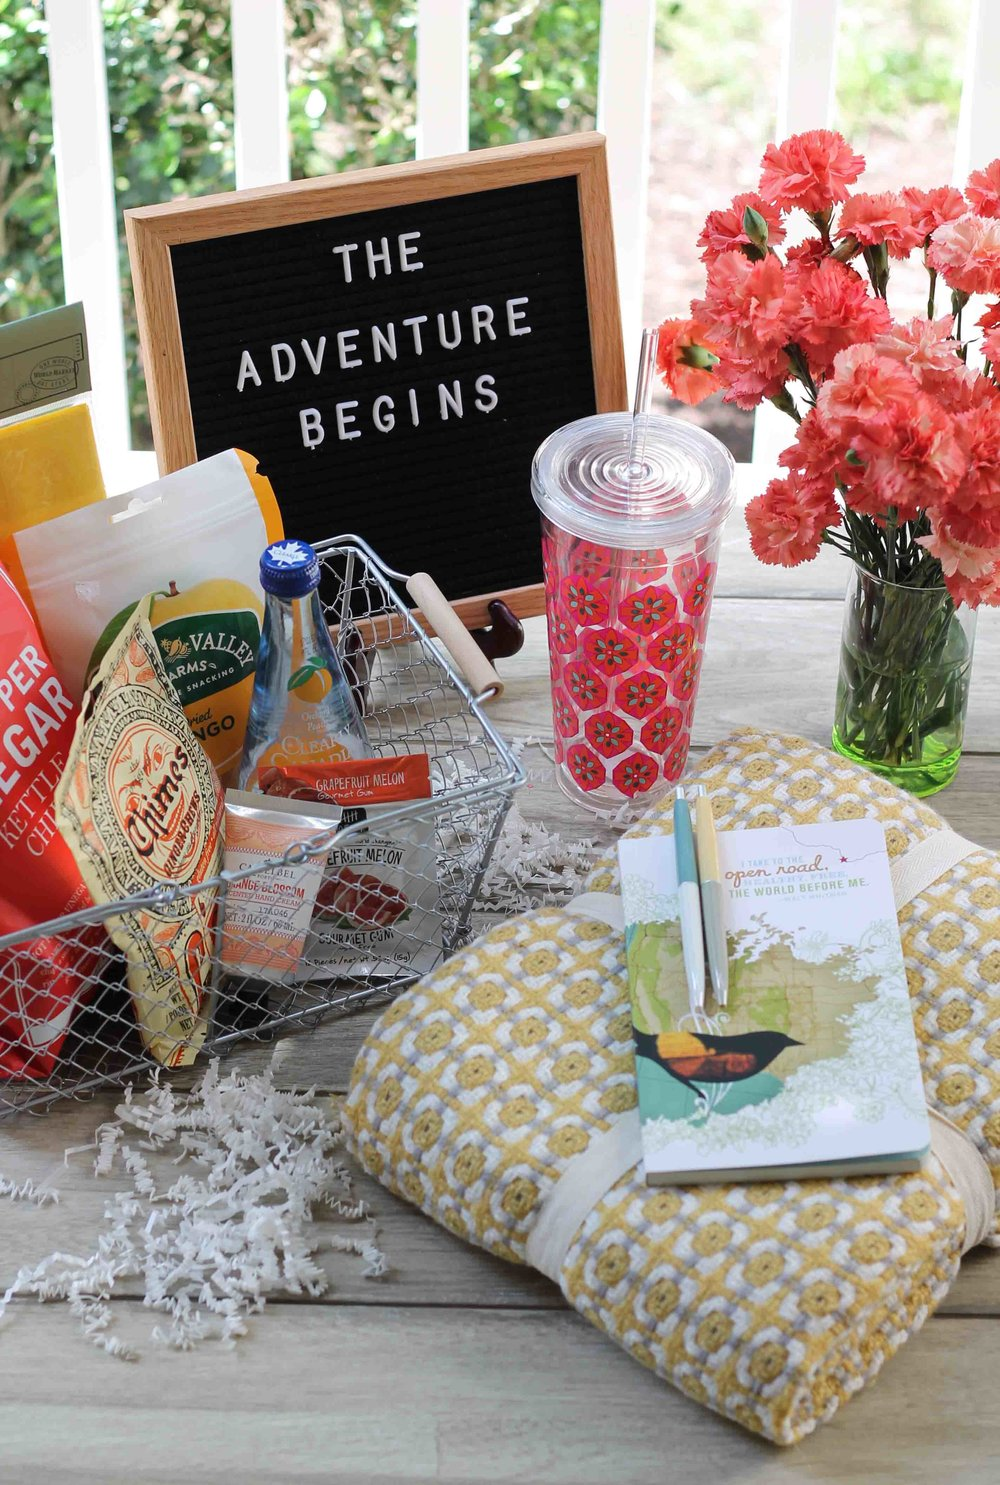 These His & Hers travel baskets are the perfect survival kits for your next summer road trip! {Pedantic Foodie}